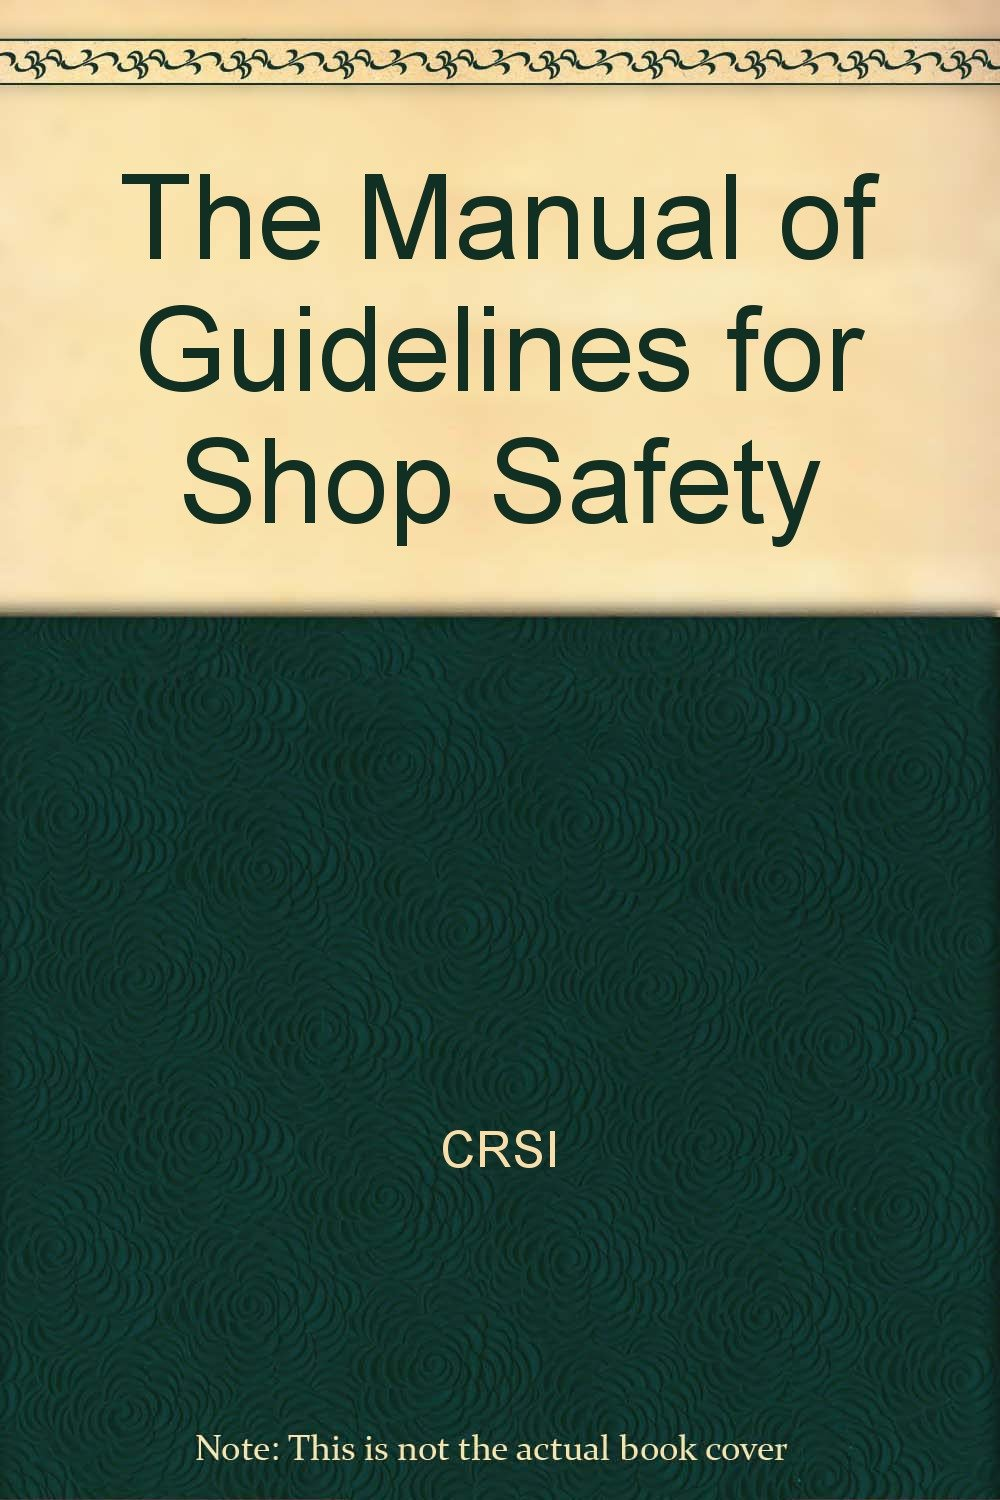 The Manual of Guidelines for Shop Safety pdf